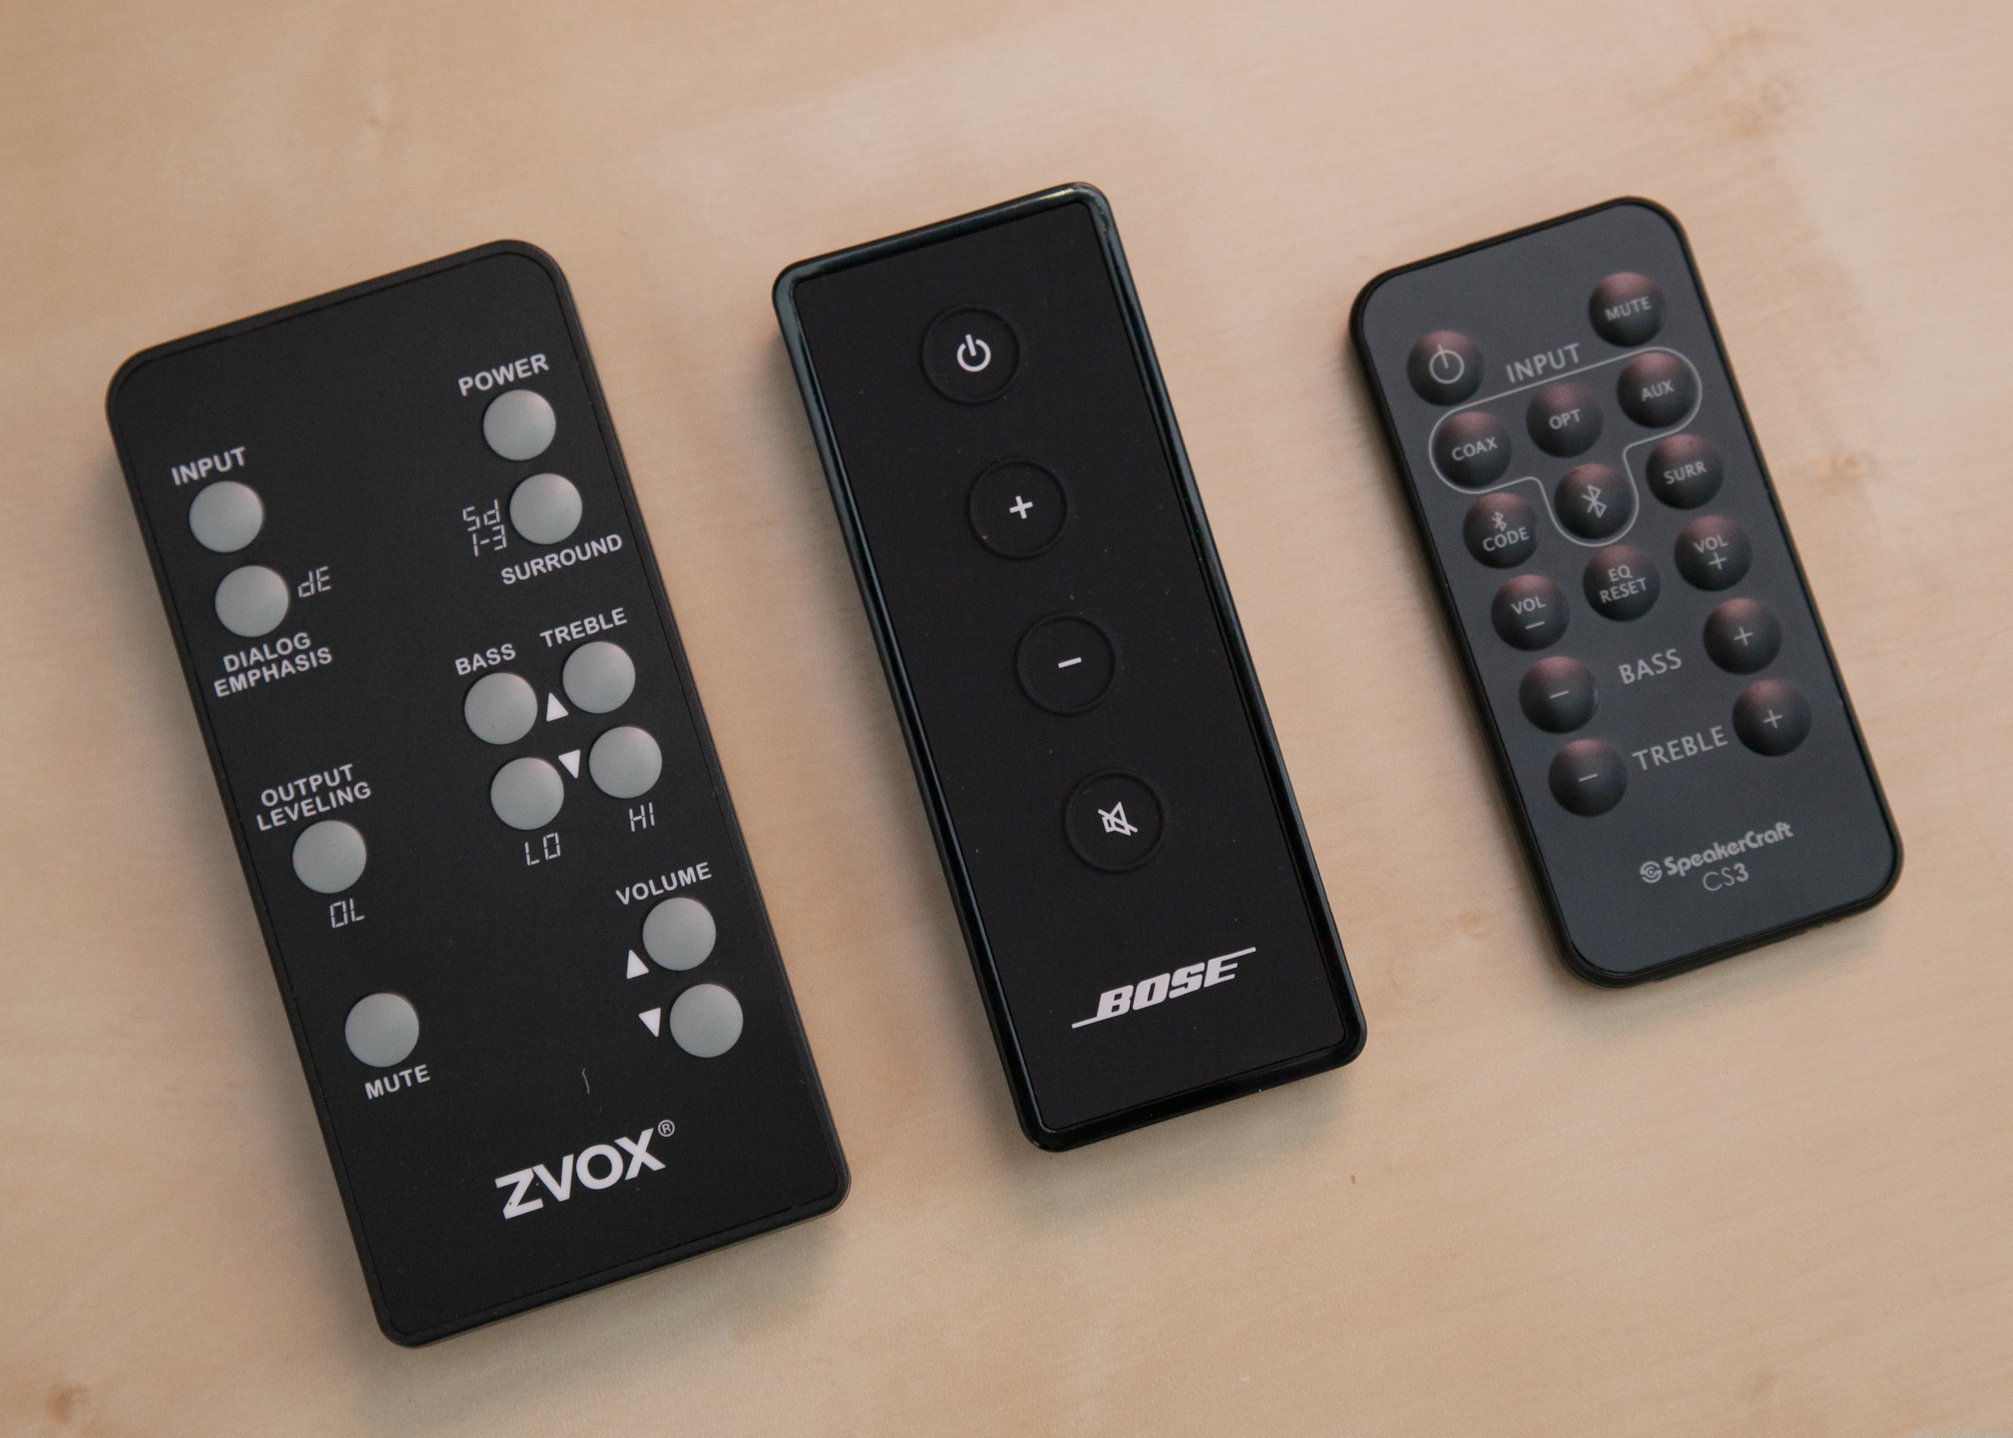 Bose Solo remote compared to others